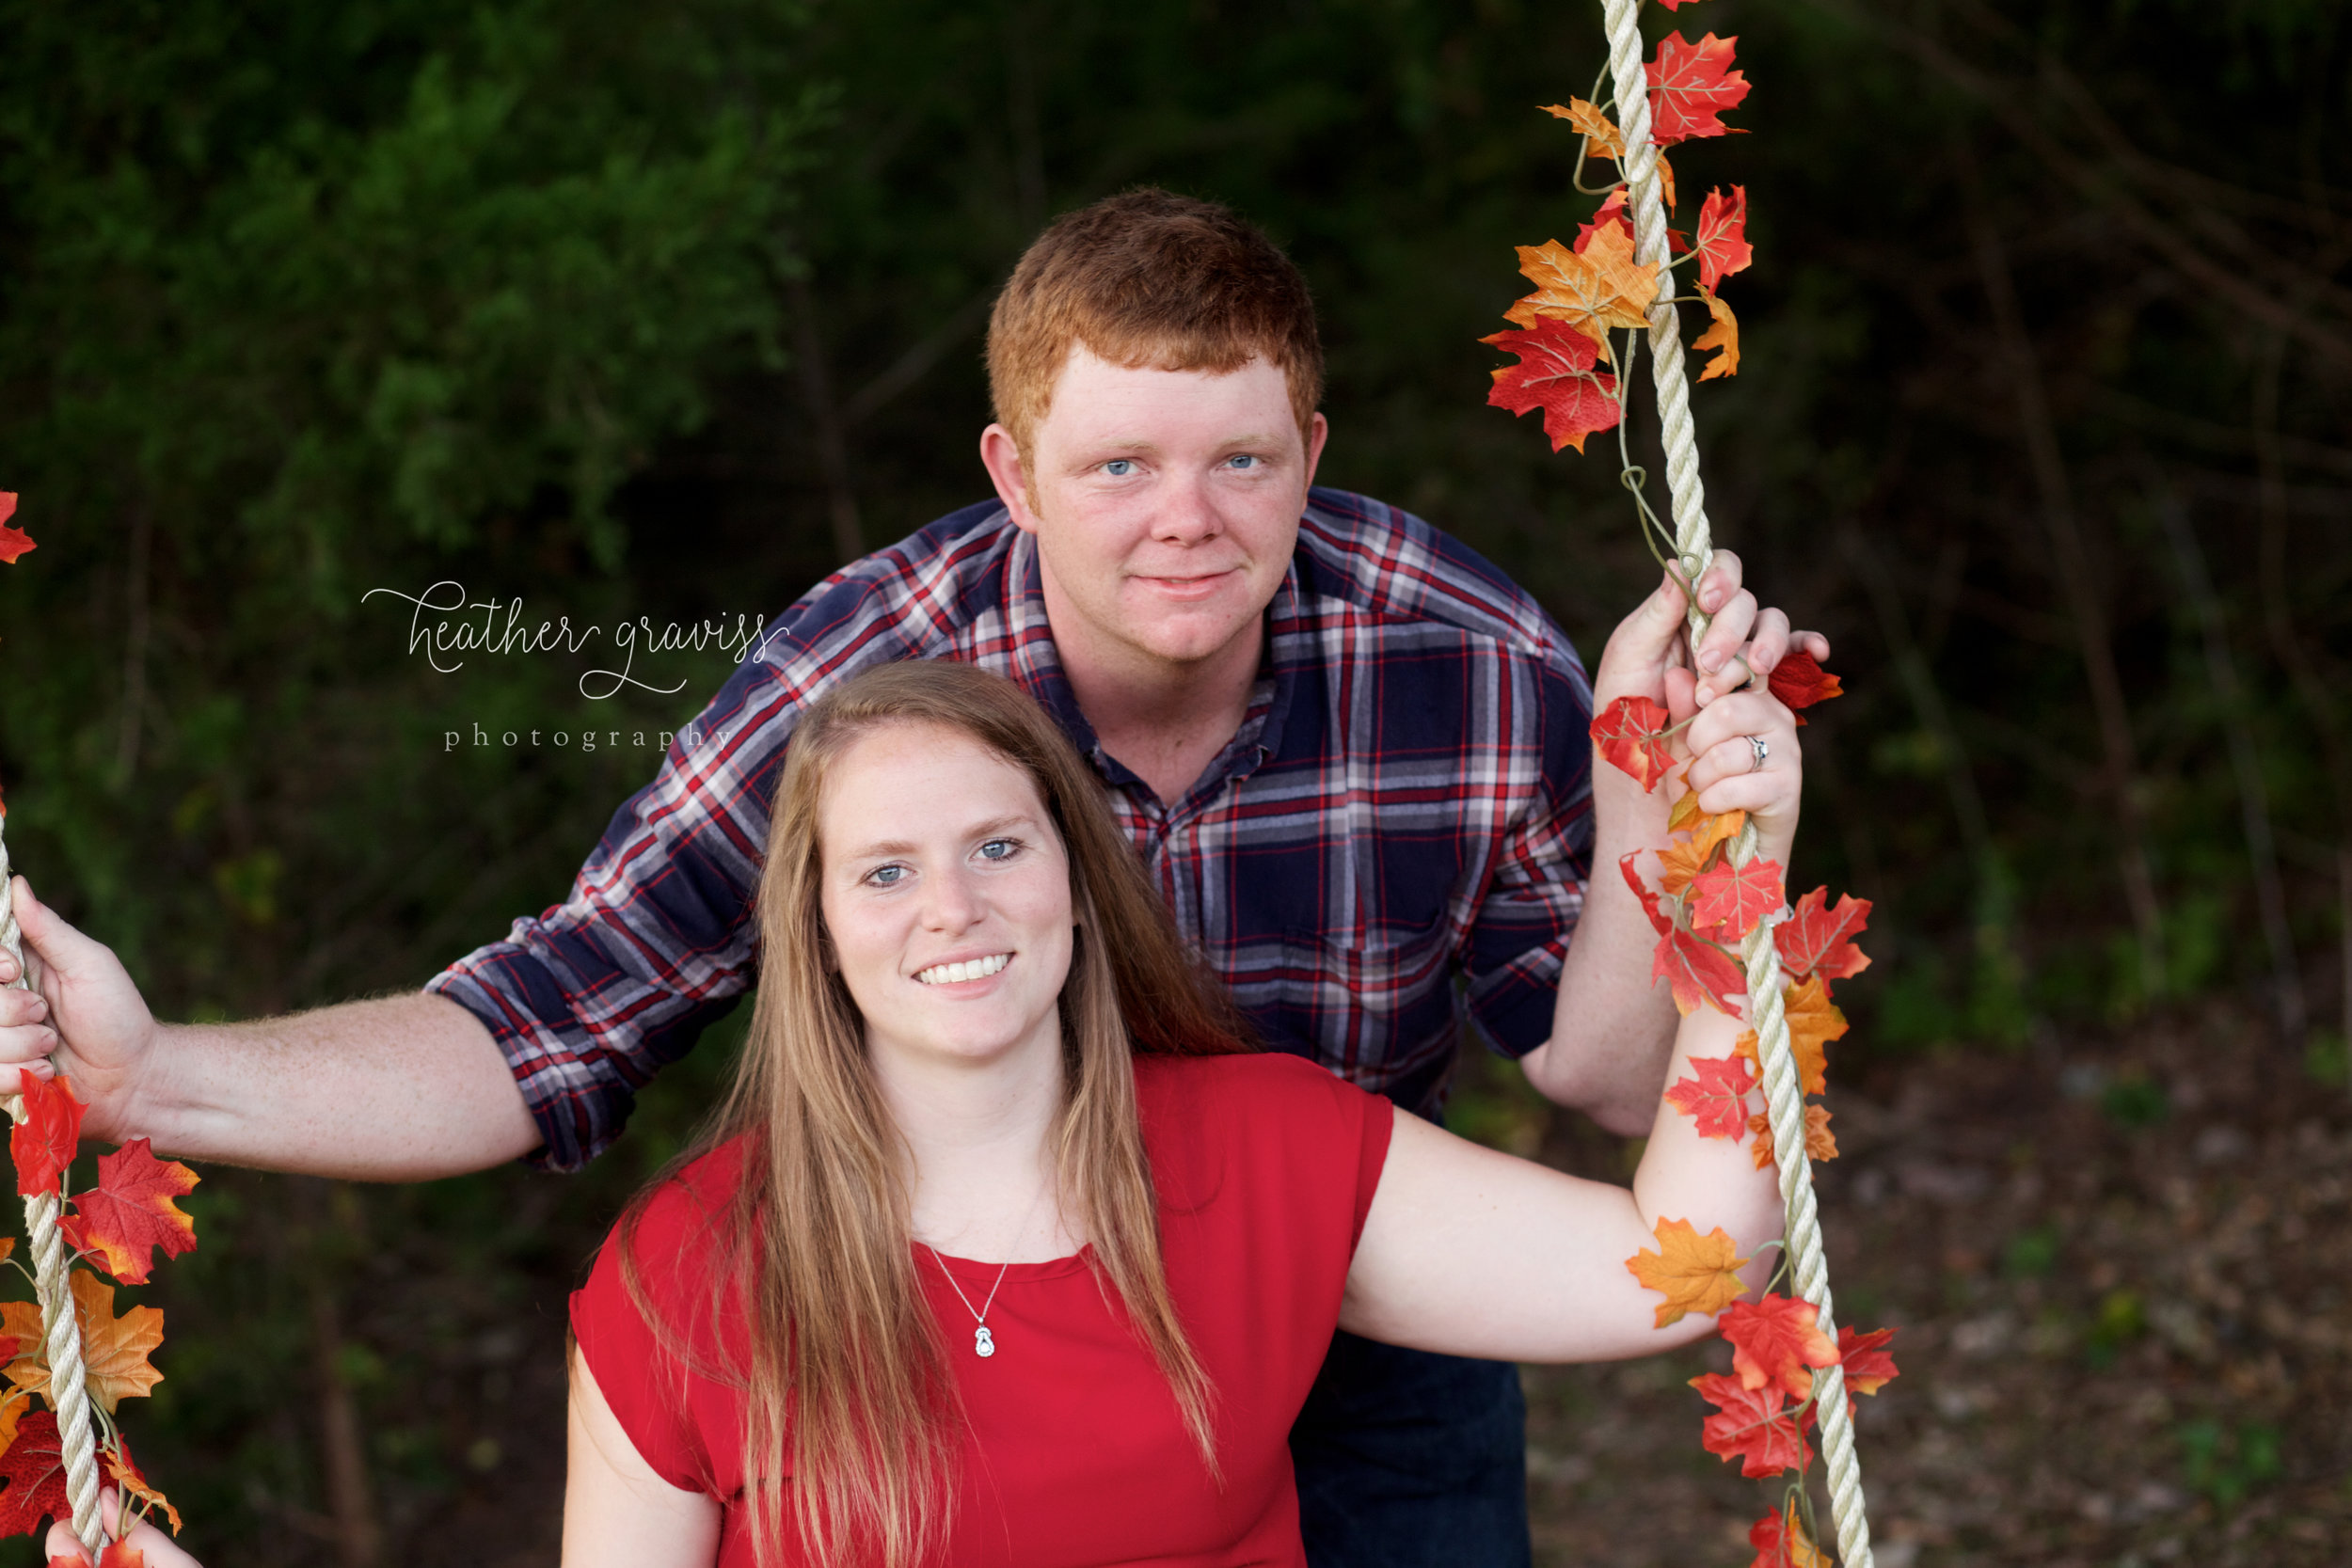 nashville middle tn engagement photographer 285.jpg